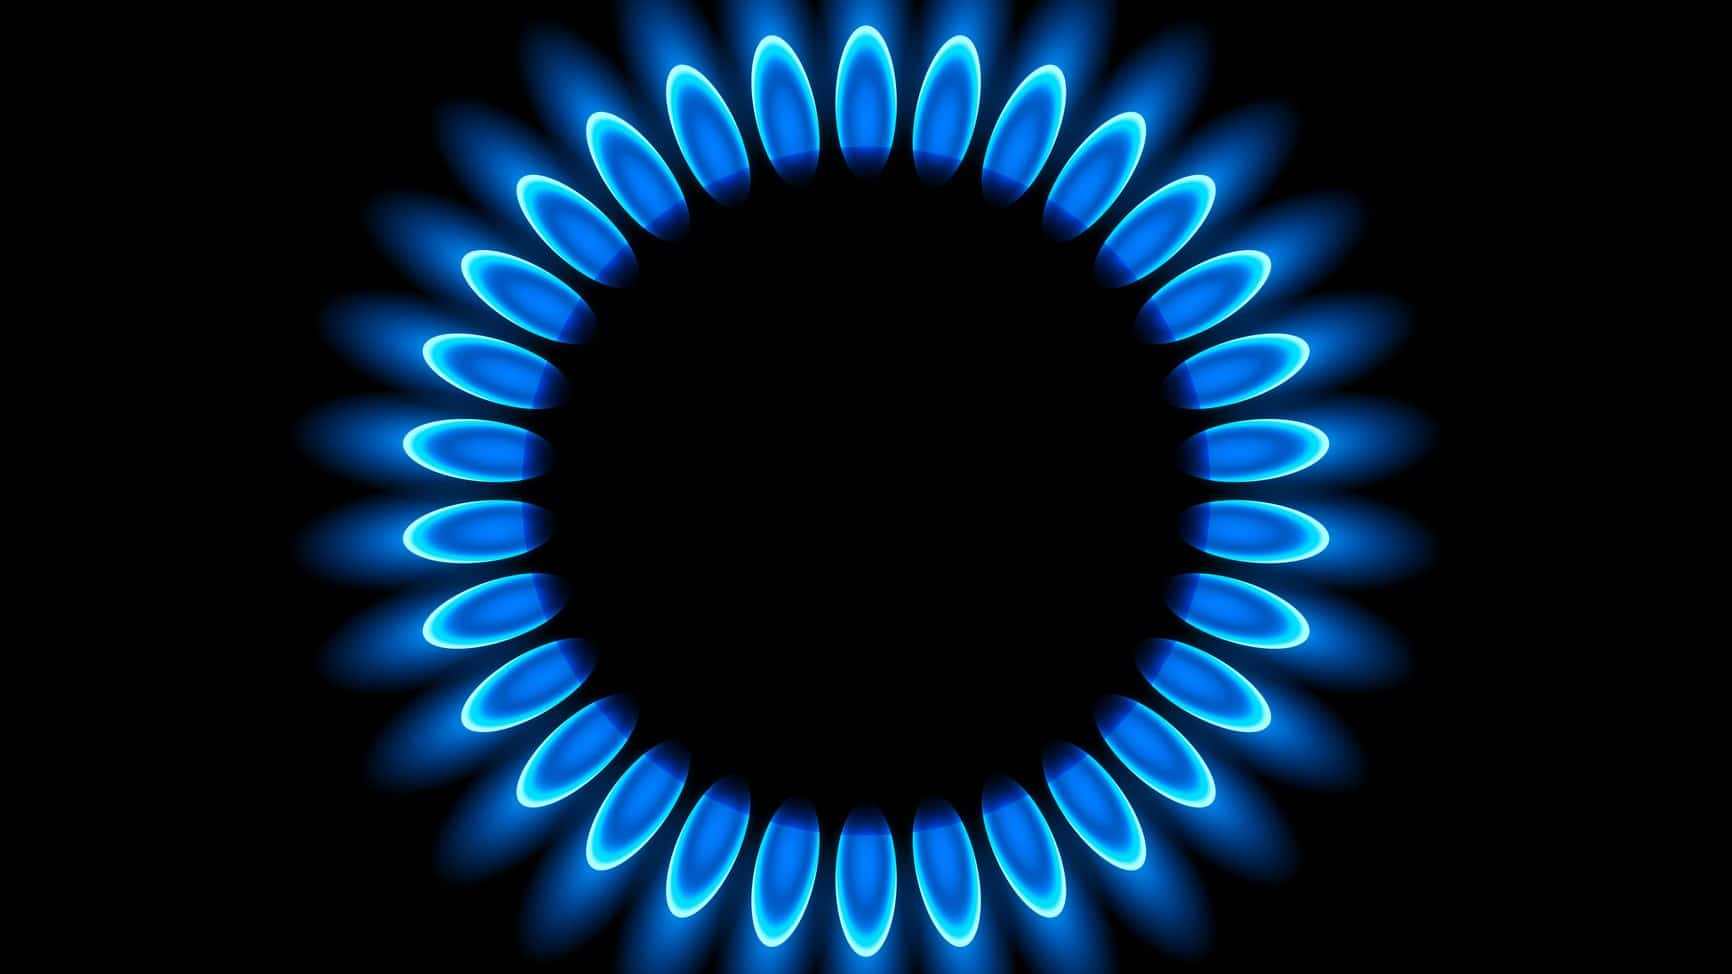 close up shot of gas burner representing asx energy share price